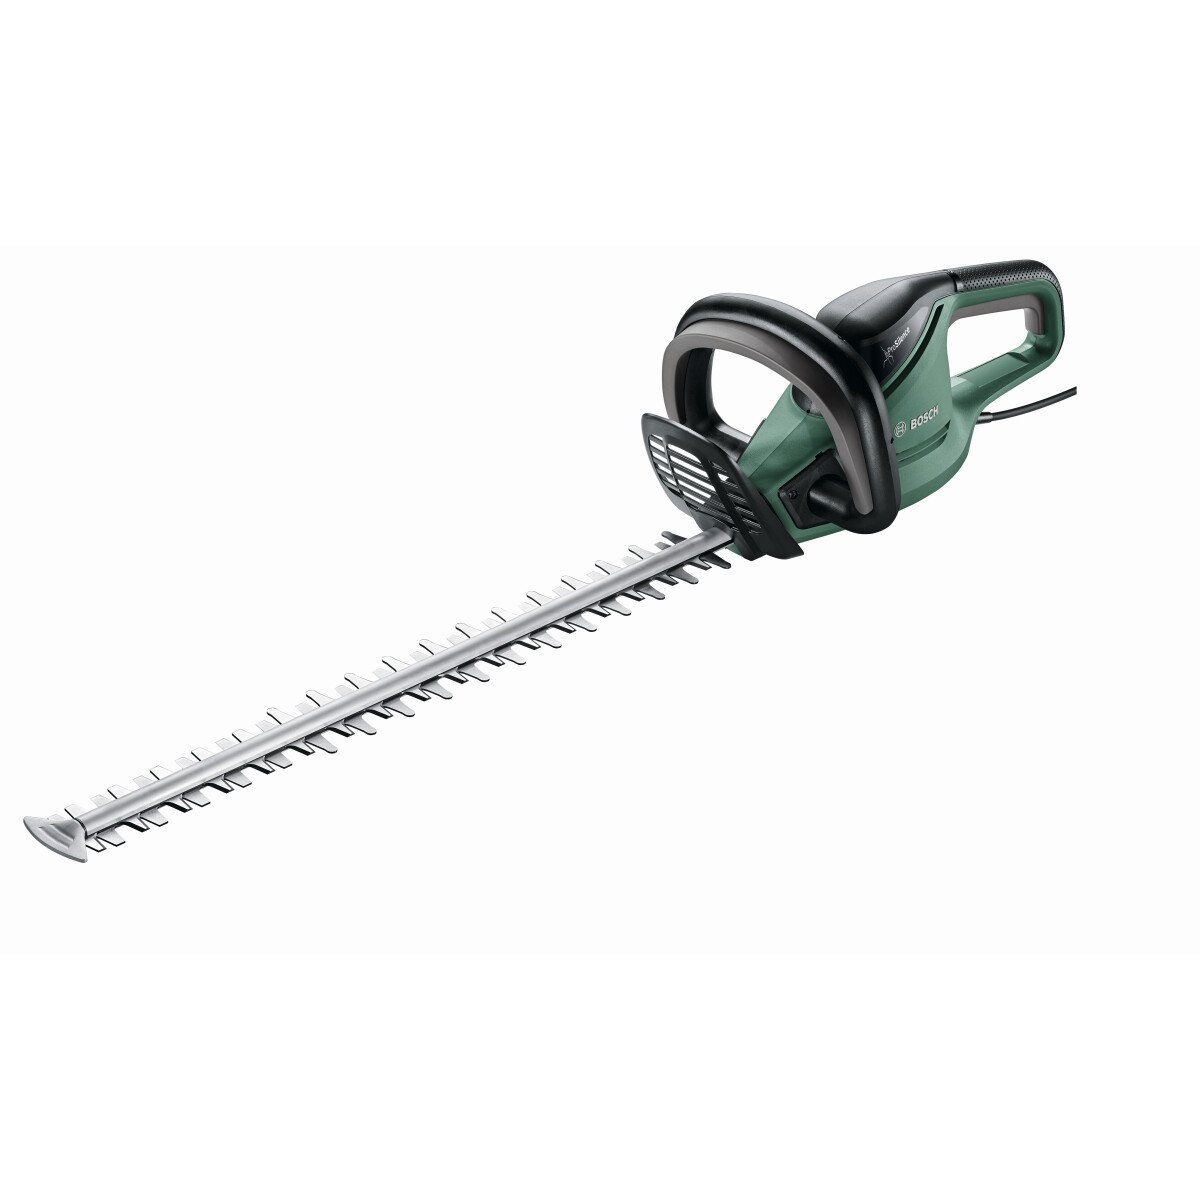 Bosch UniversalHedgeCut 50 50cm 480W Hedge Cutter with Powerful Sawing Function